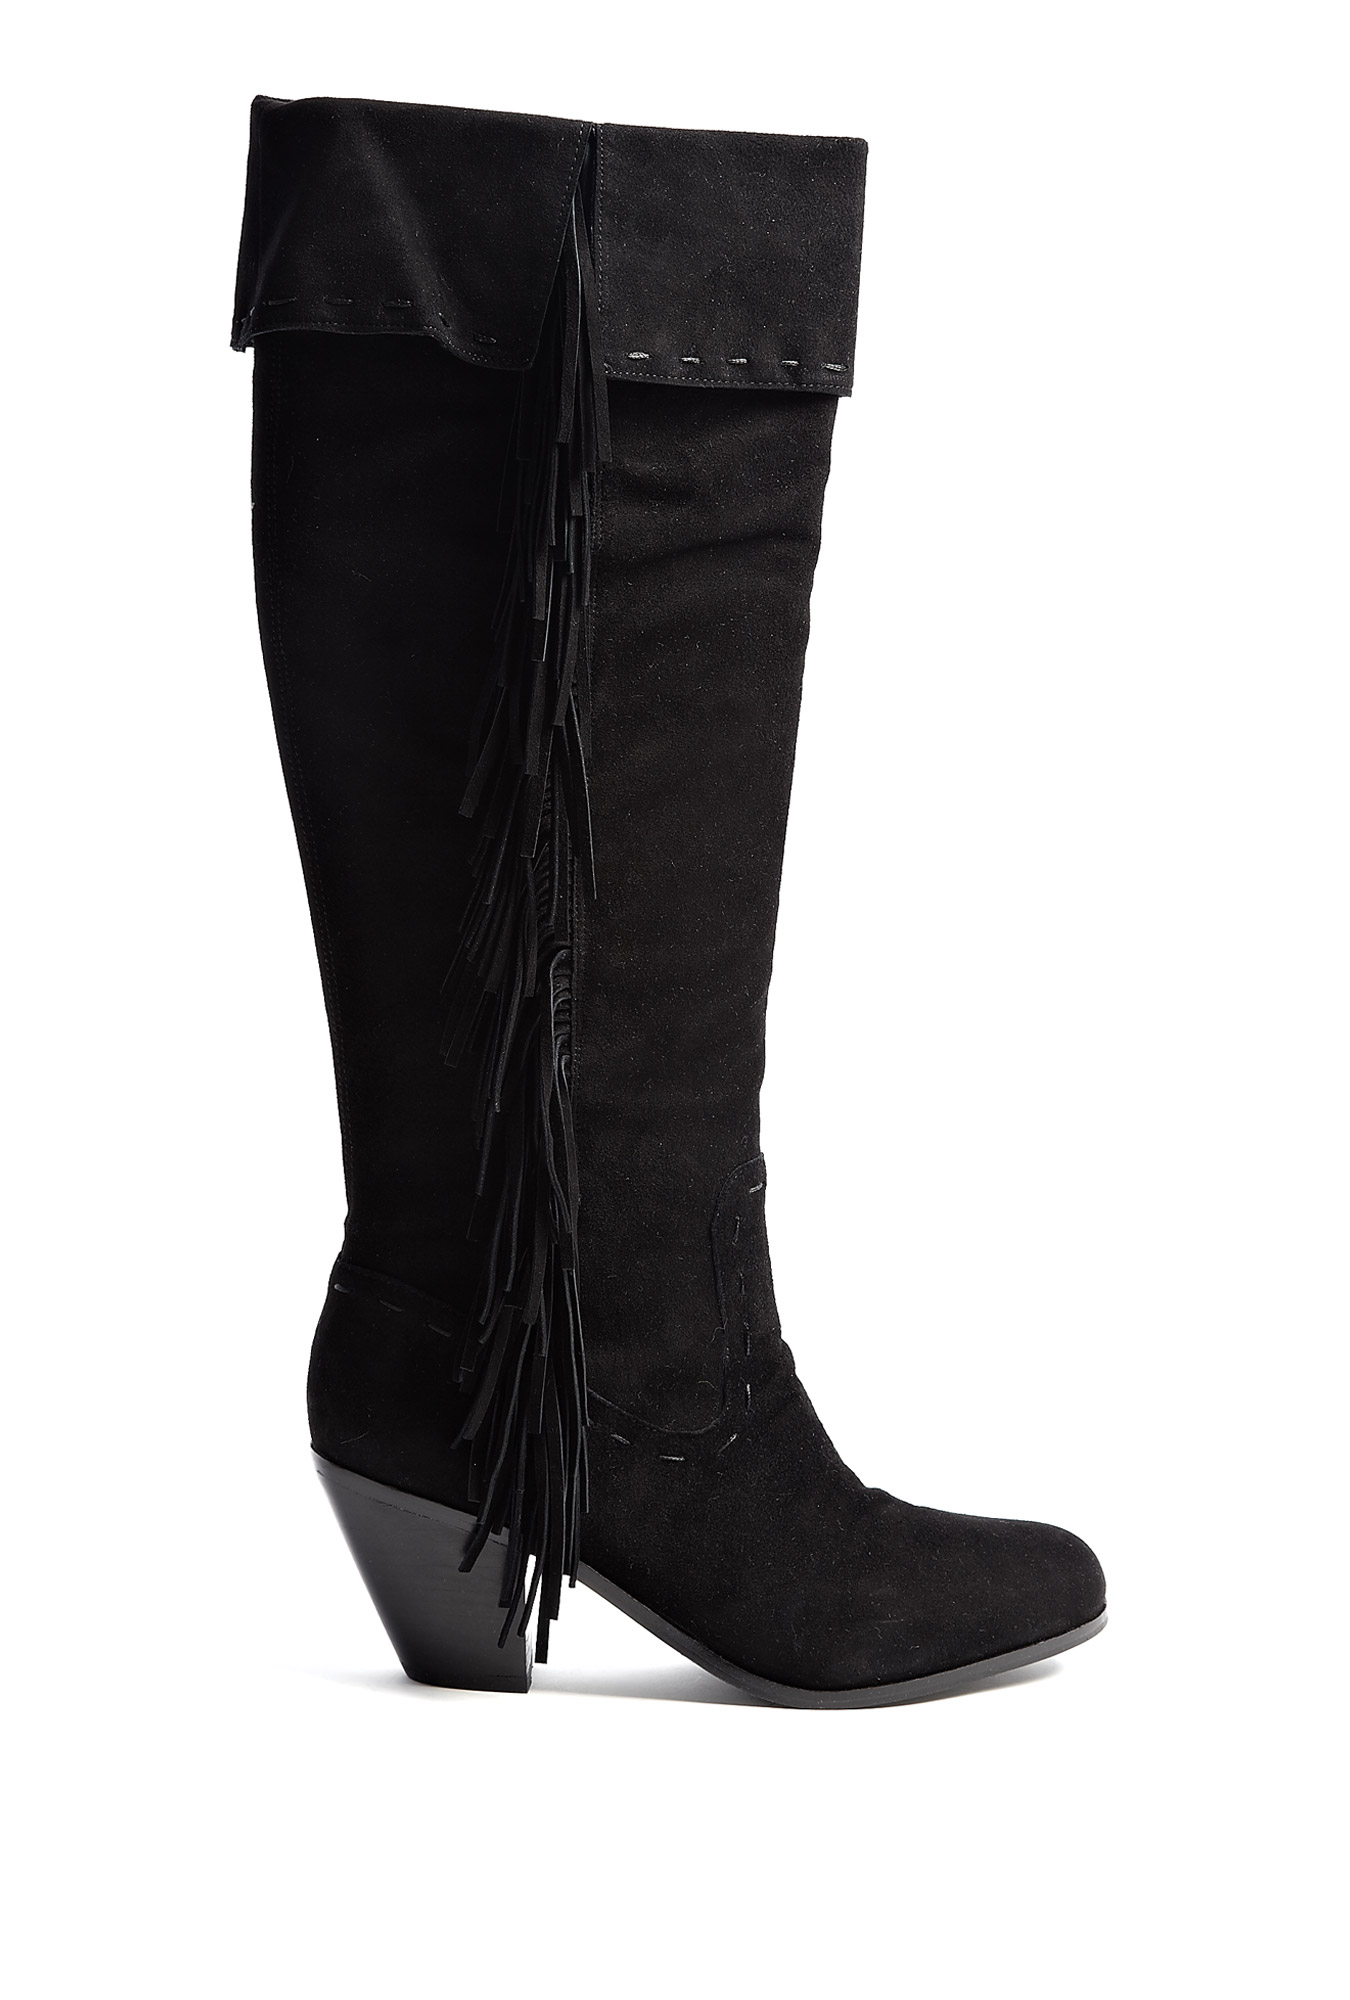 sam edelman louella fringed knee high boots in black lyst